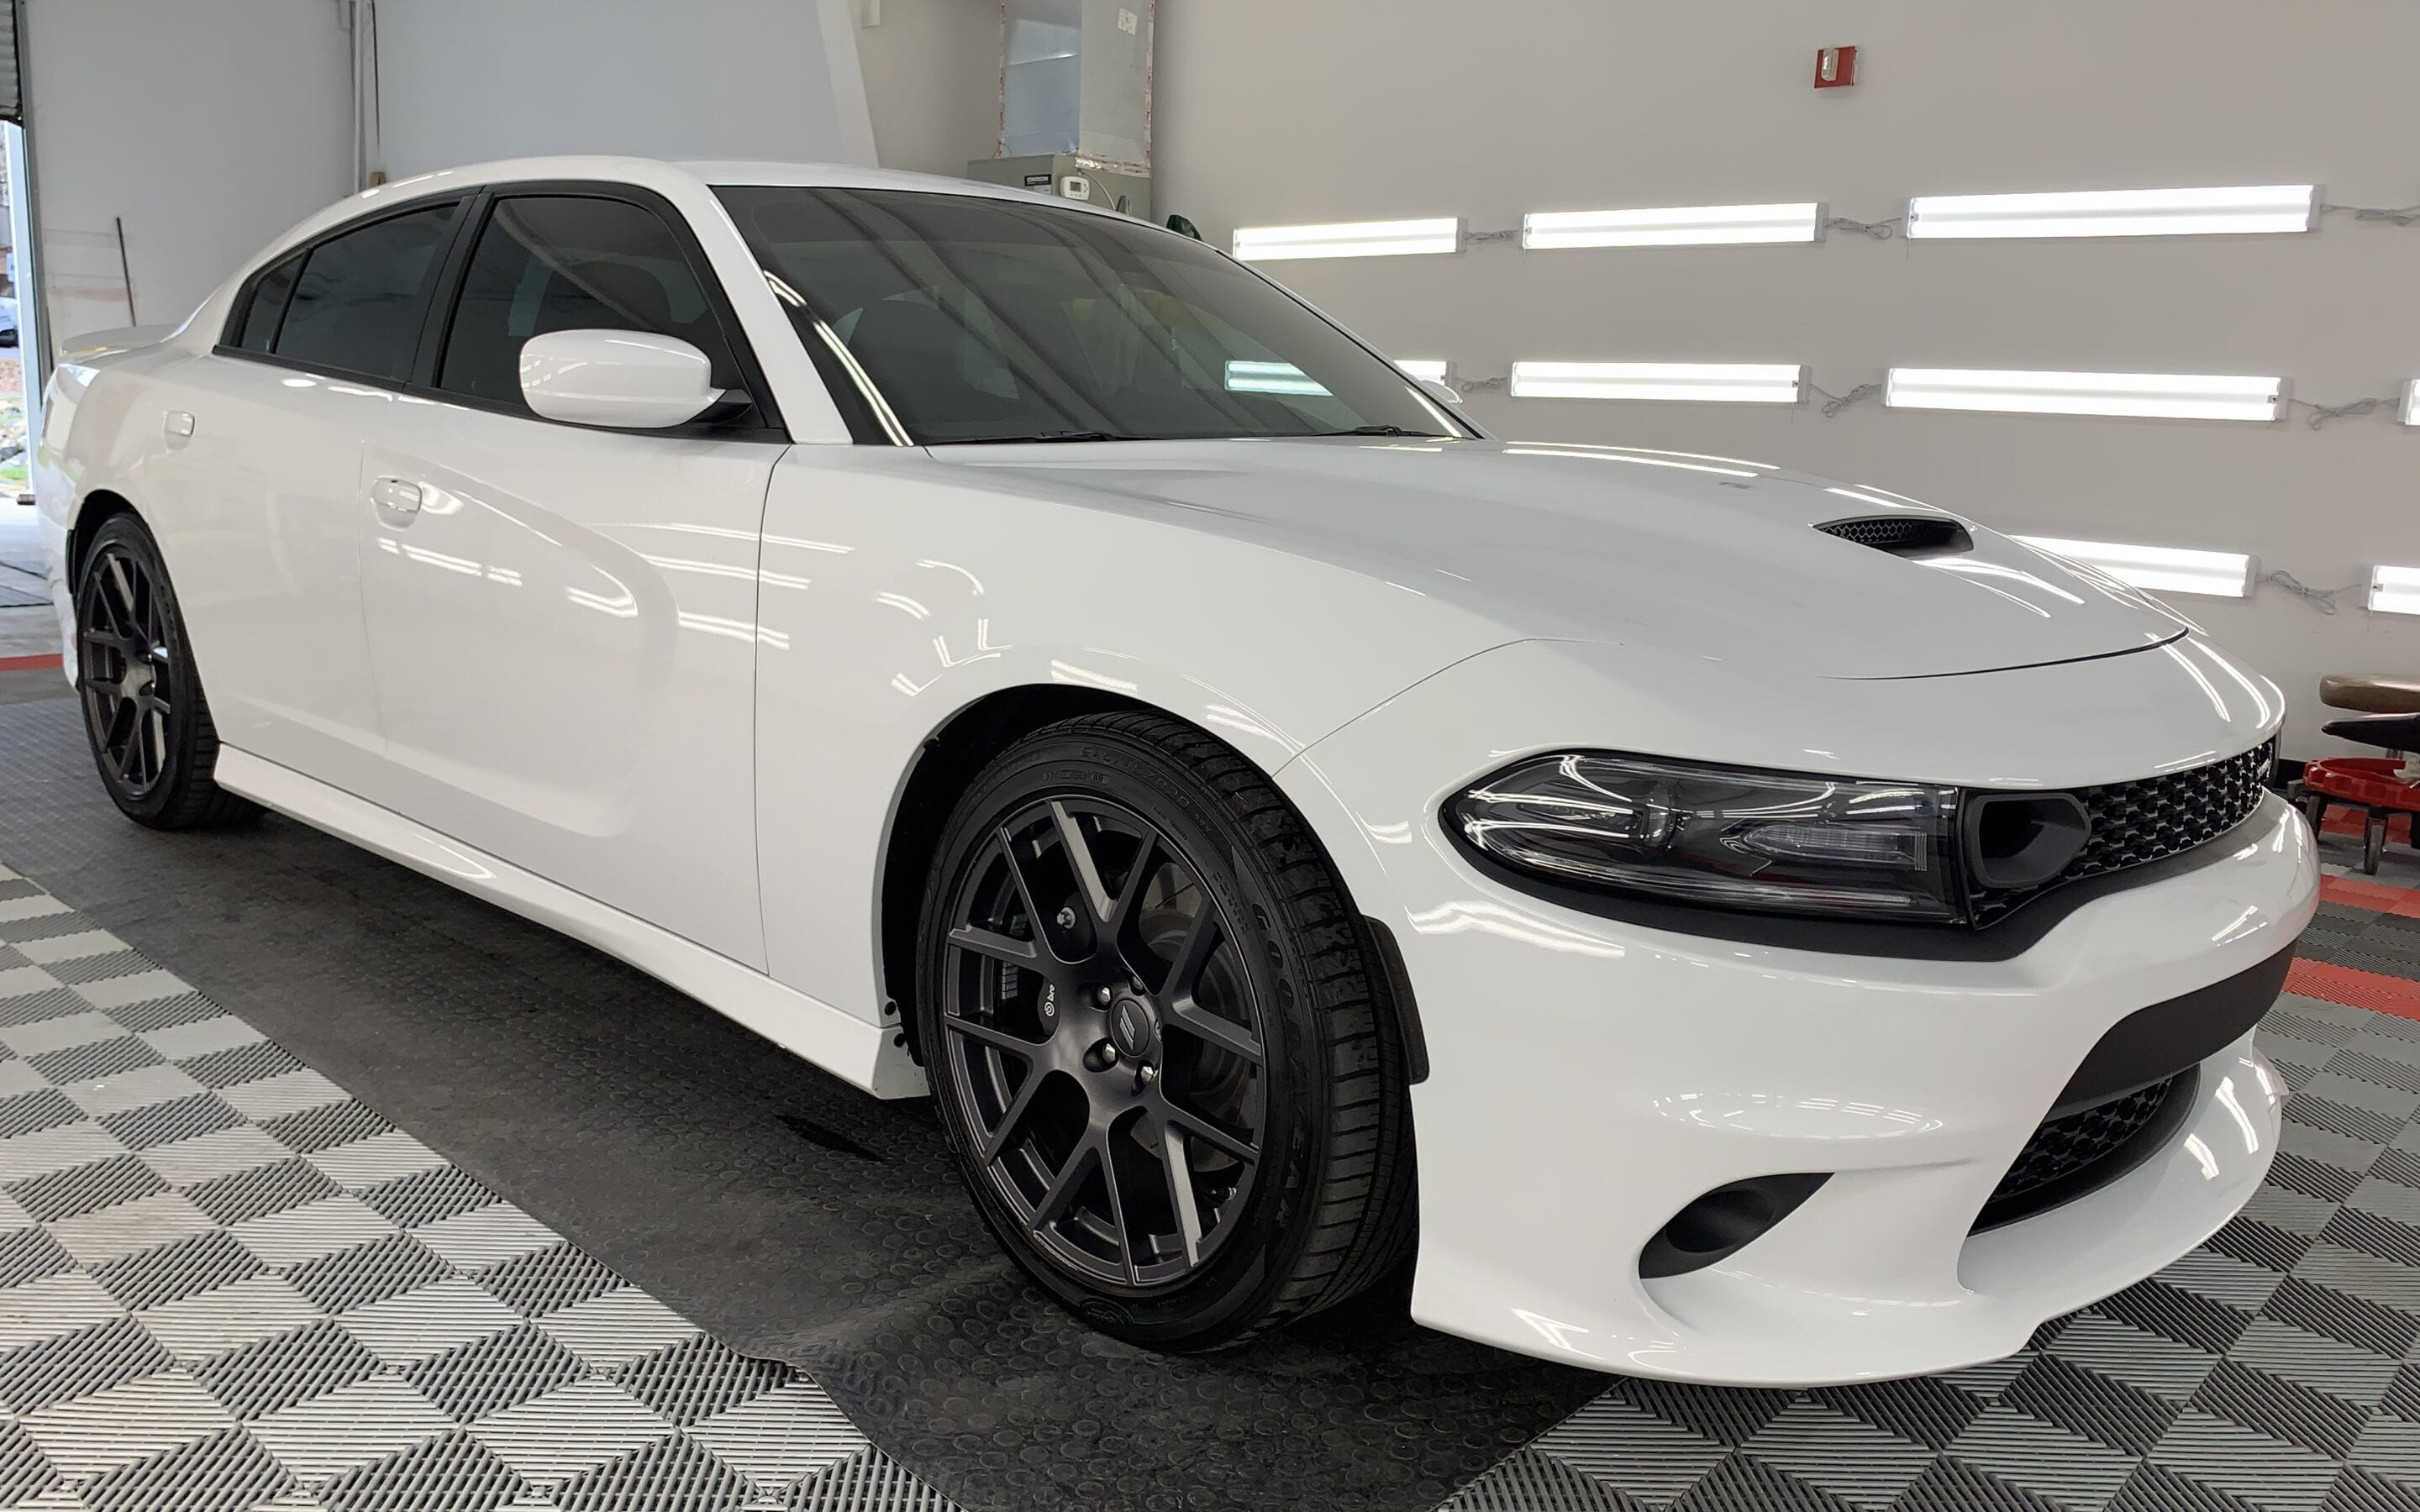 Photo of a New Car Preparation of a 2020 Dodge Challenger